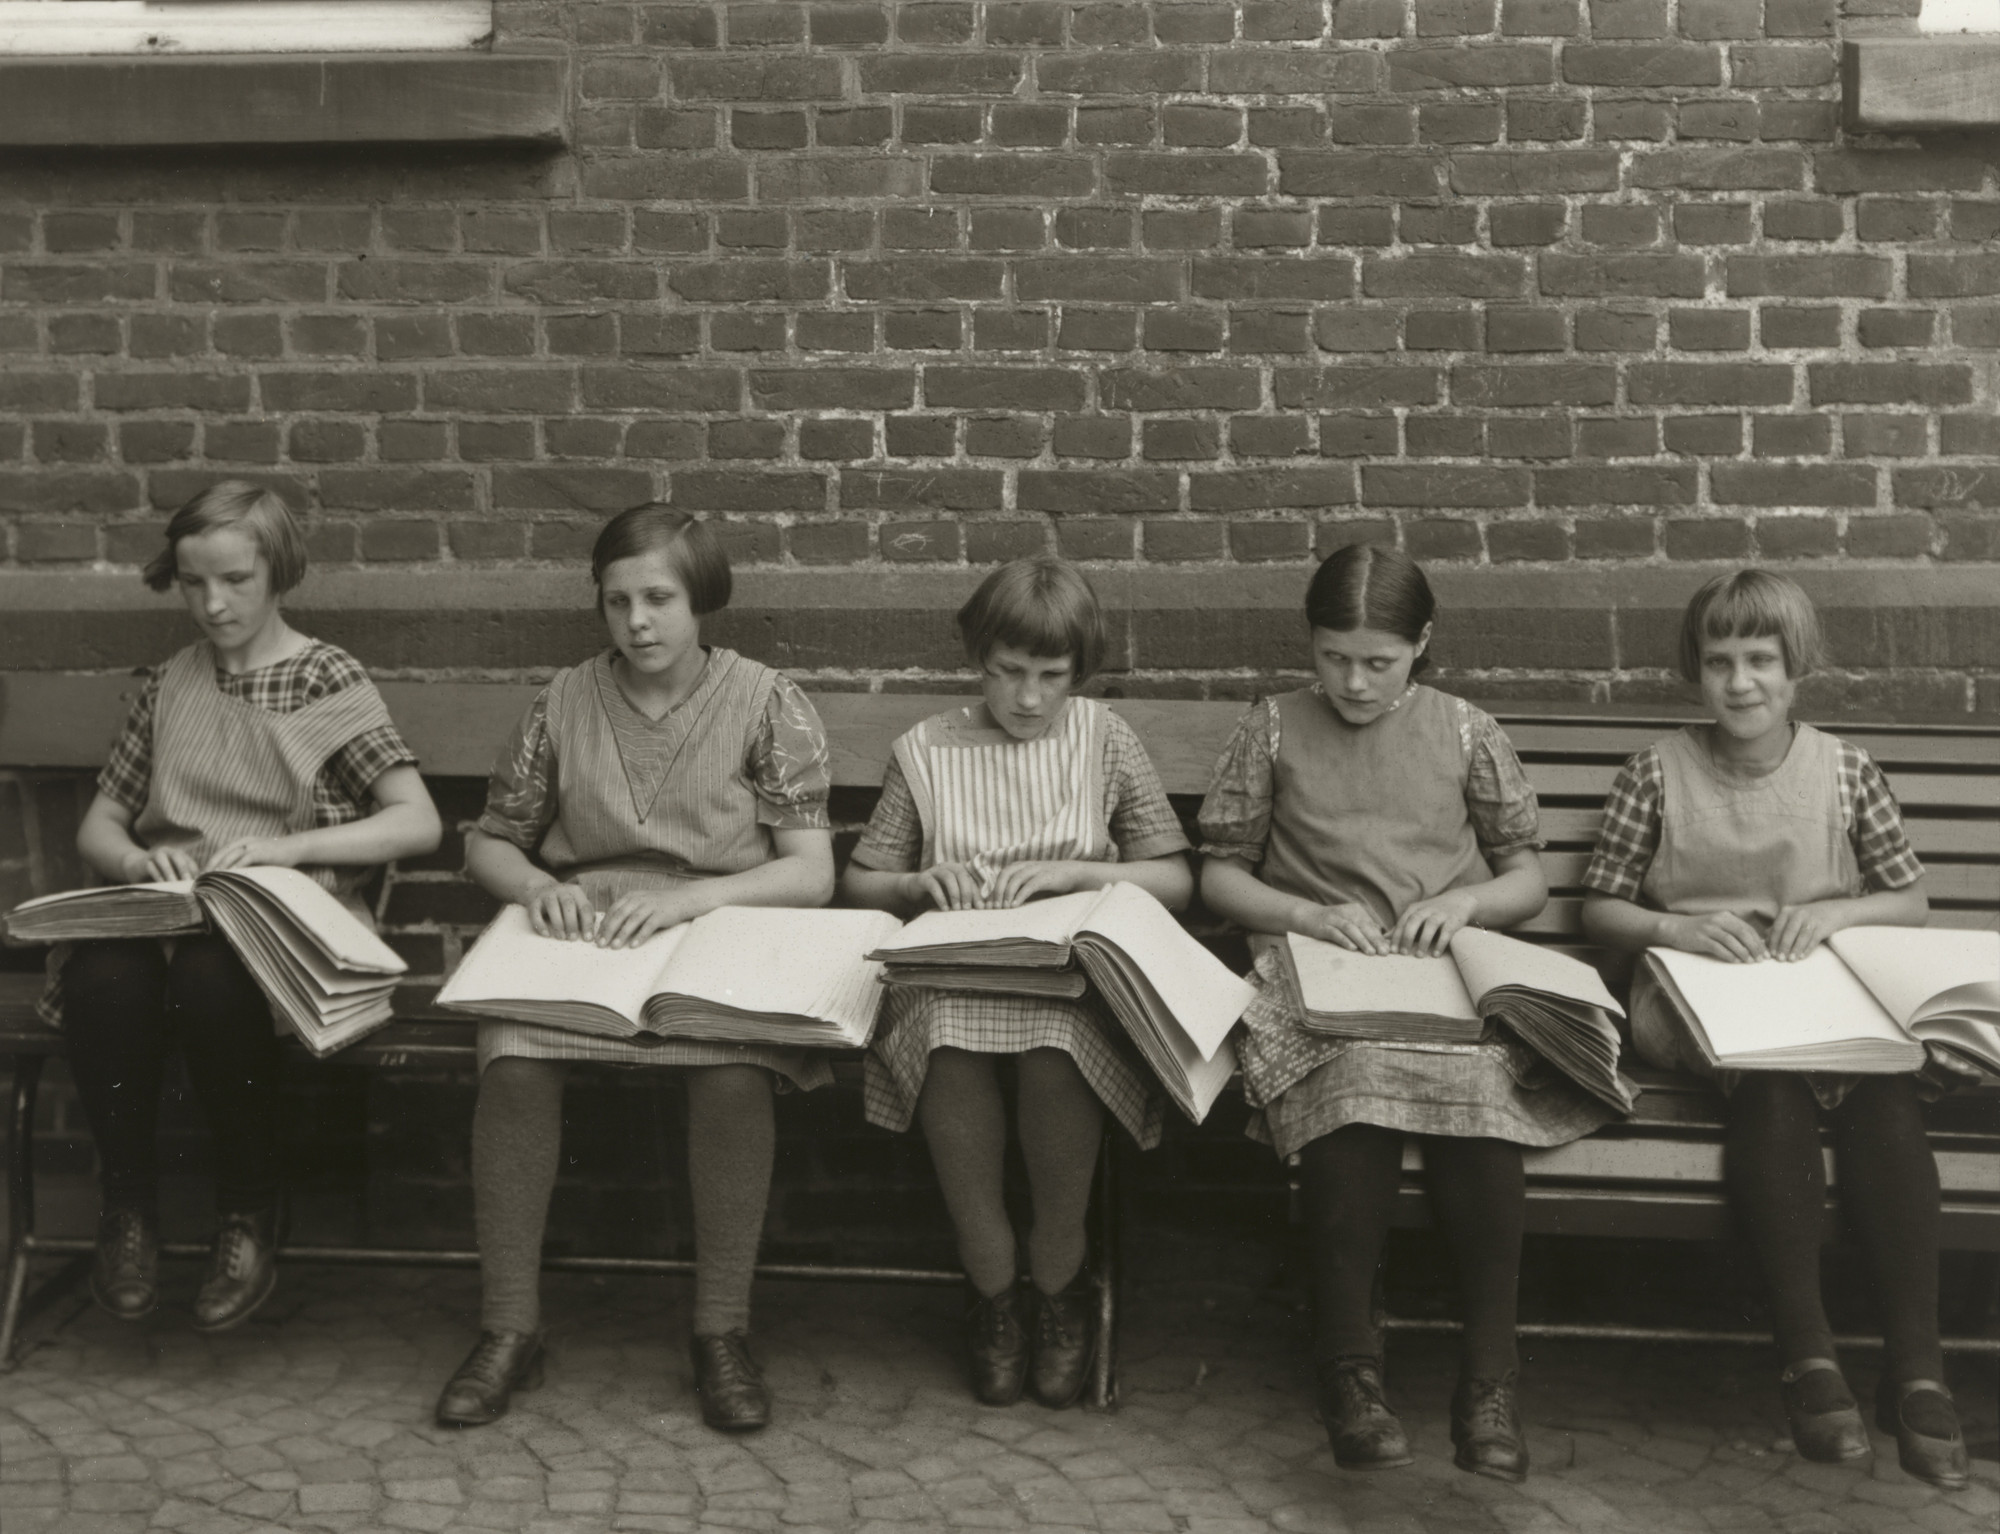 August Sander. Blind Children at their Lessons. c. 1930